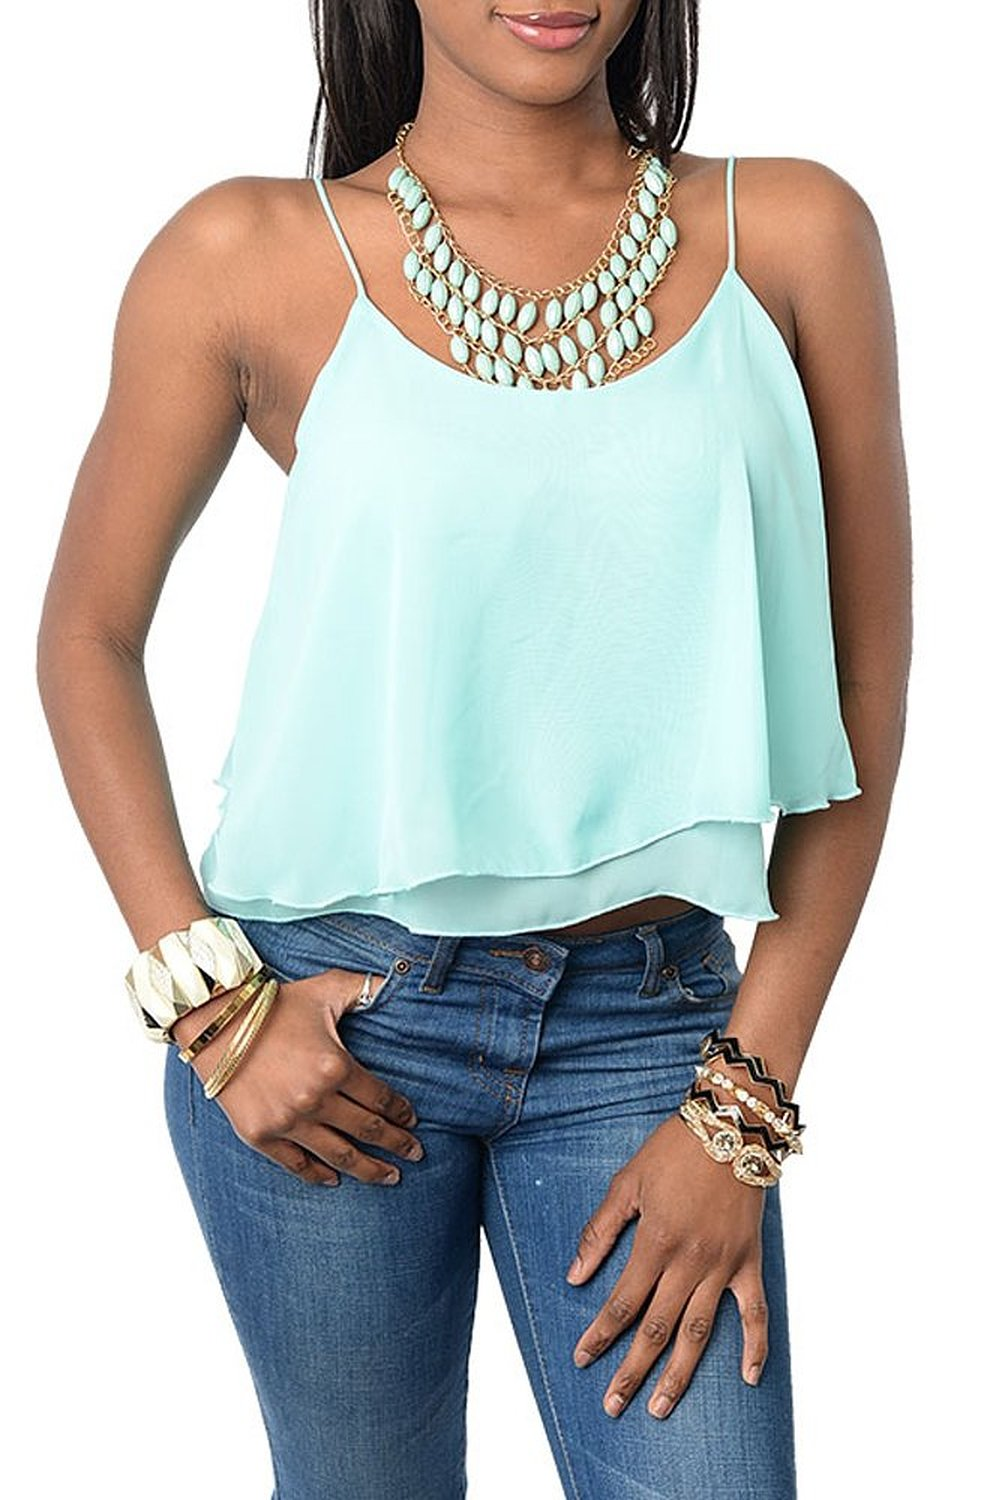 DHStyles Women's Sexy Ruffled Tiered Spaghetti Strap Crop Top at Amazon Women's Clothing store: